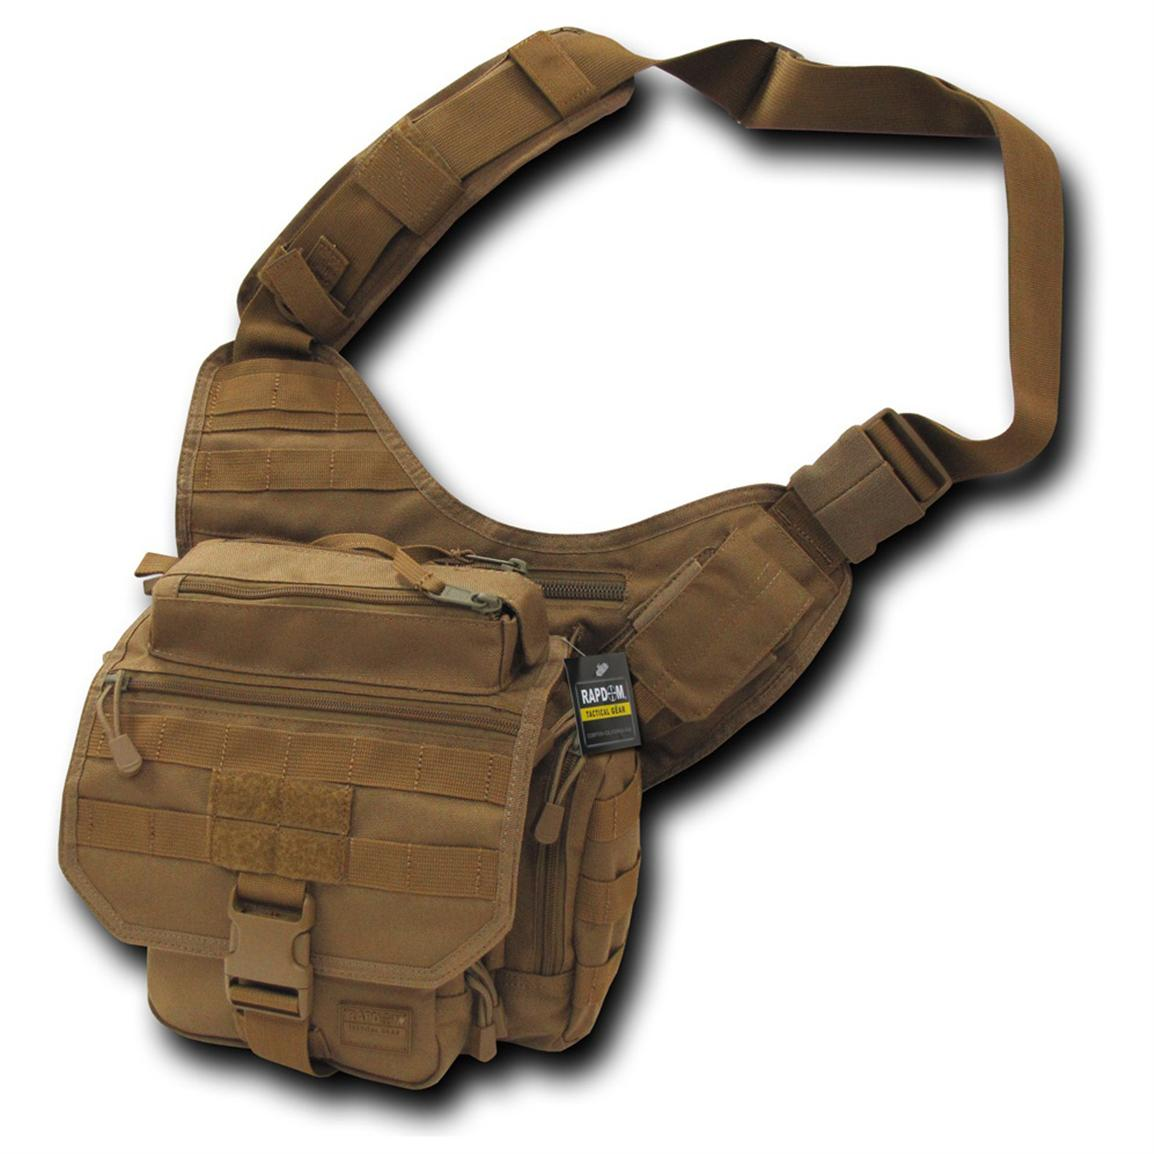 Rapid Dominance Tactical Field Bag, Coyote